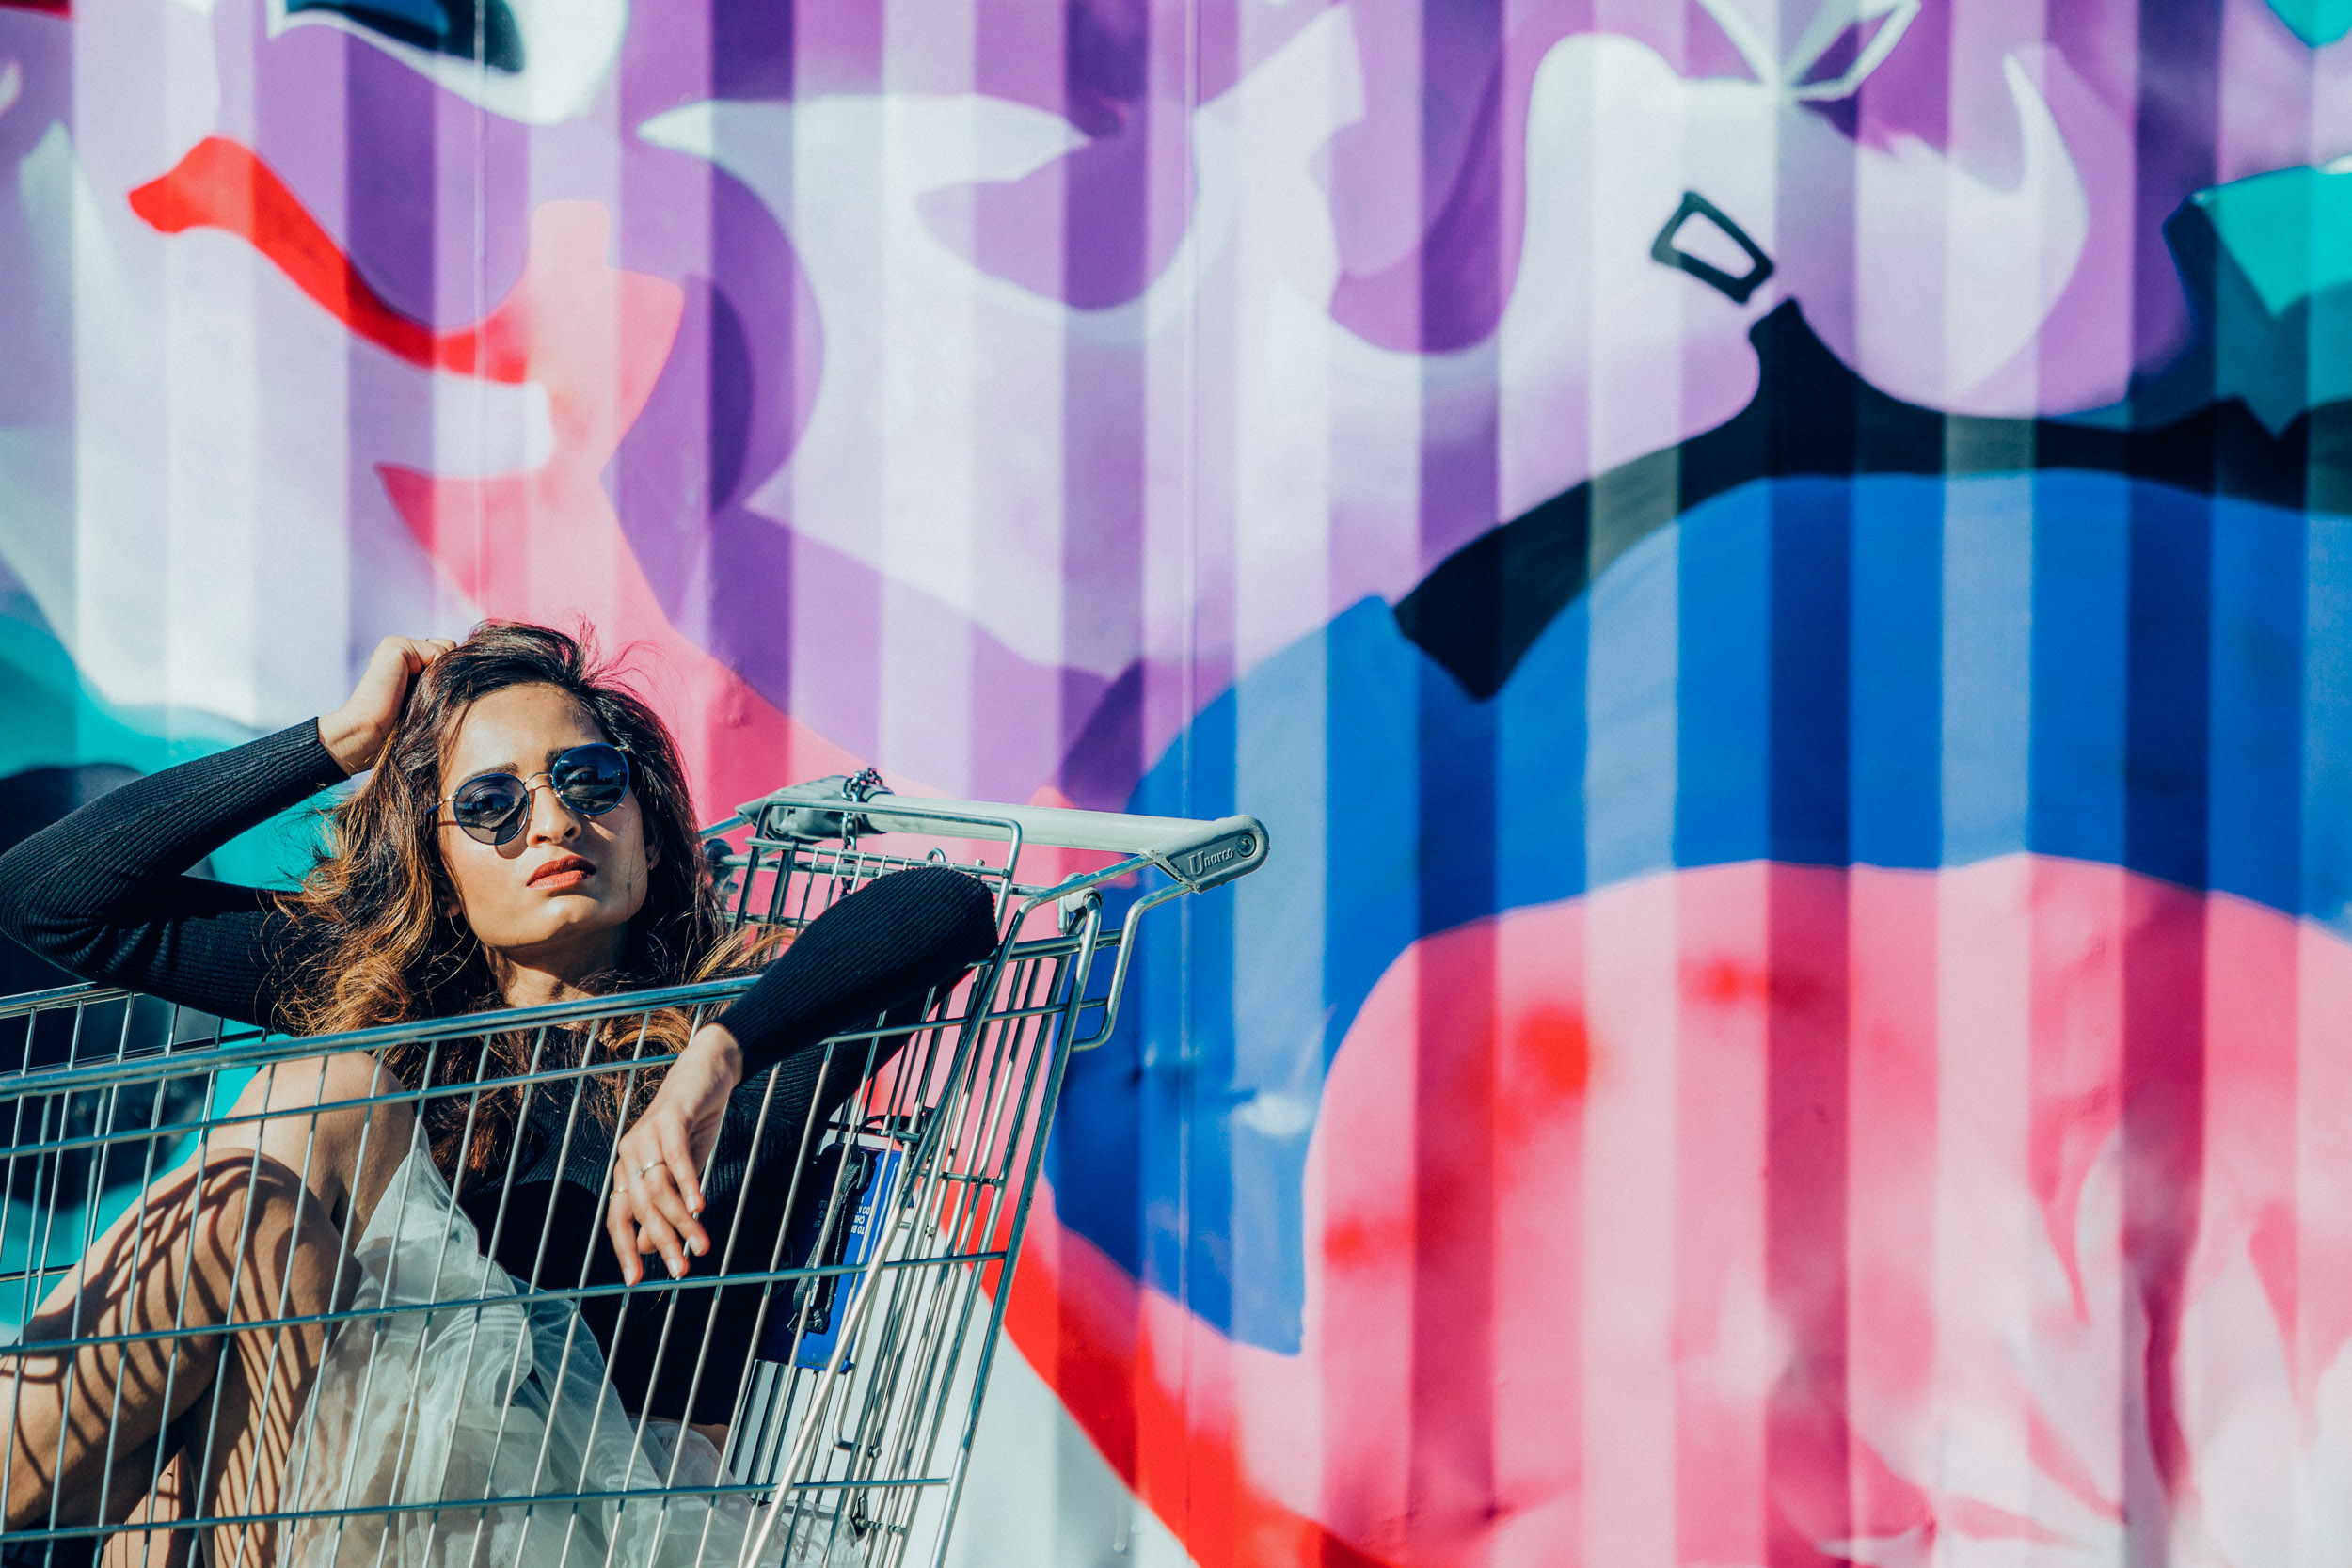 Girl wearing black sweater and sitting in a shopping cart in front of graffiti wall